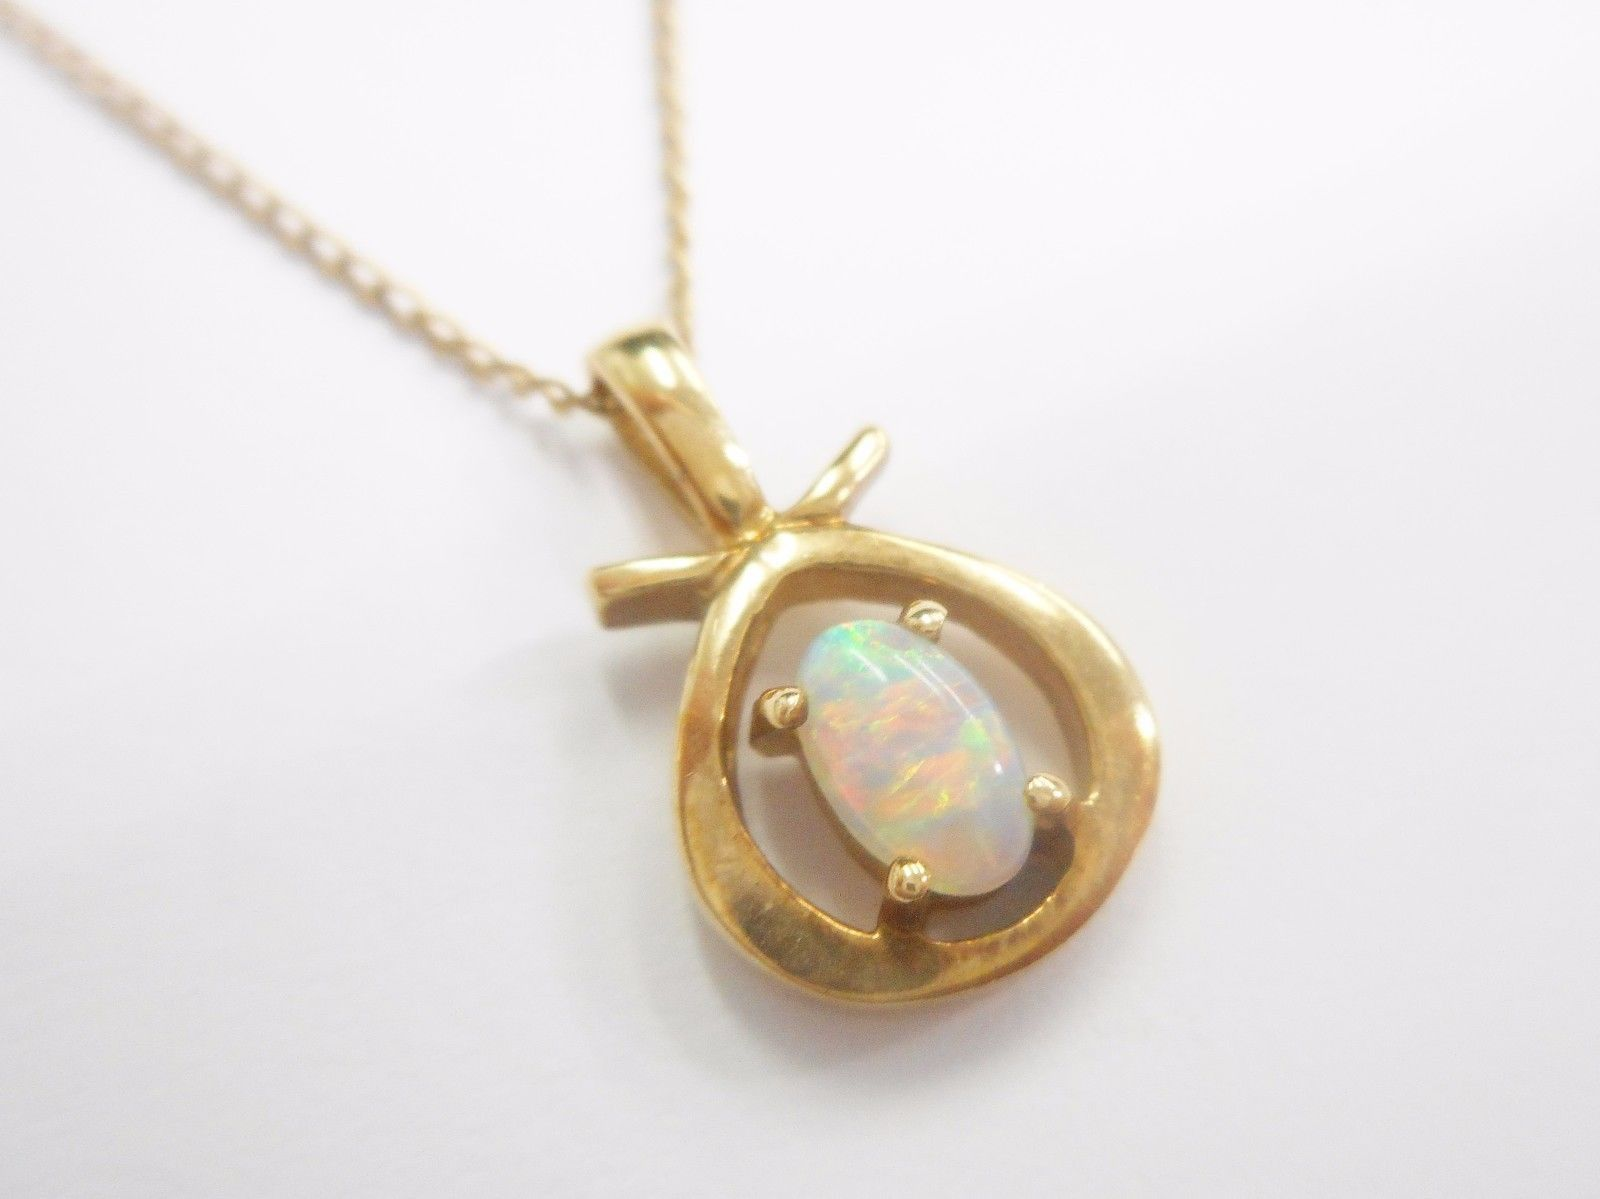 opal pendant mom shape and fire collection sea baby blue kid product mommy limited heart products turtle with image necklace edition